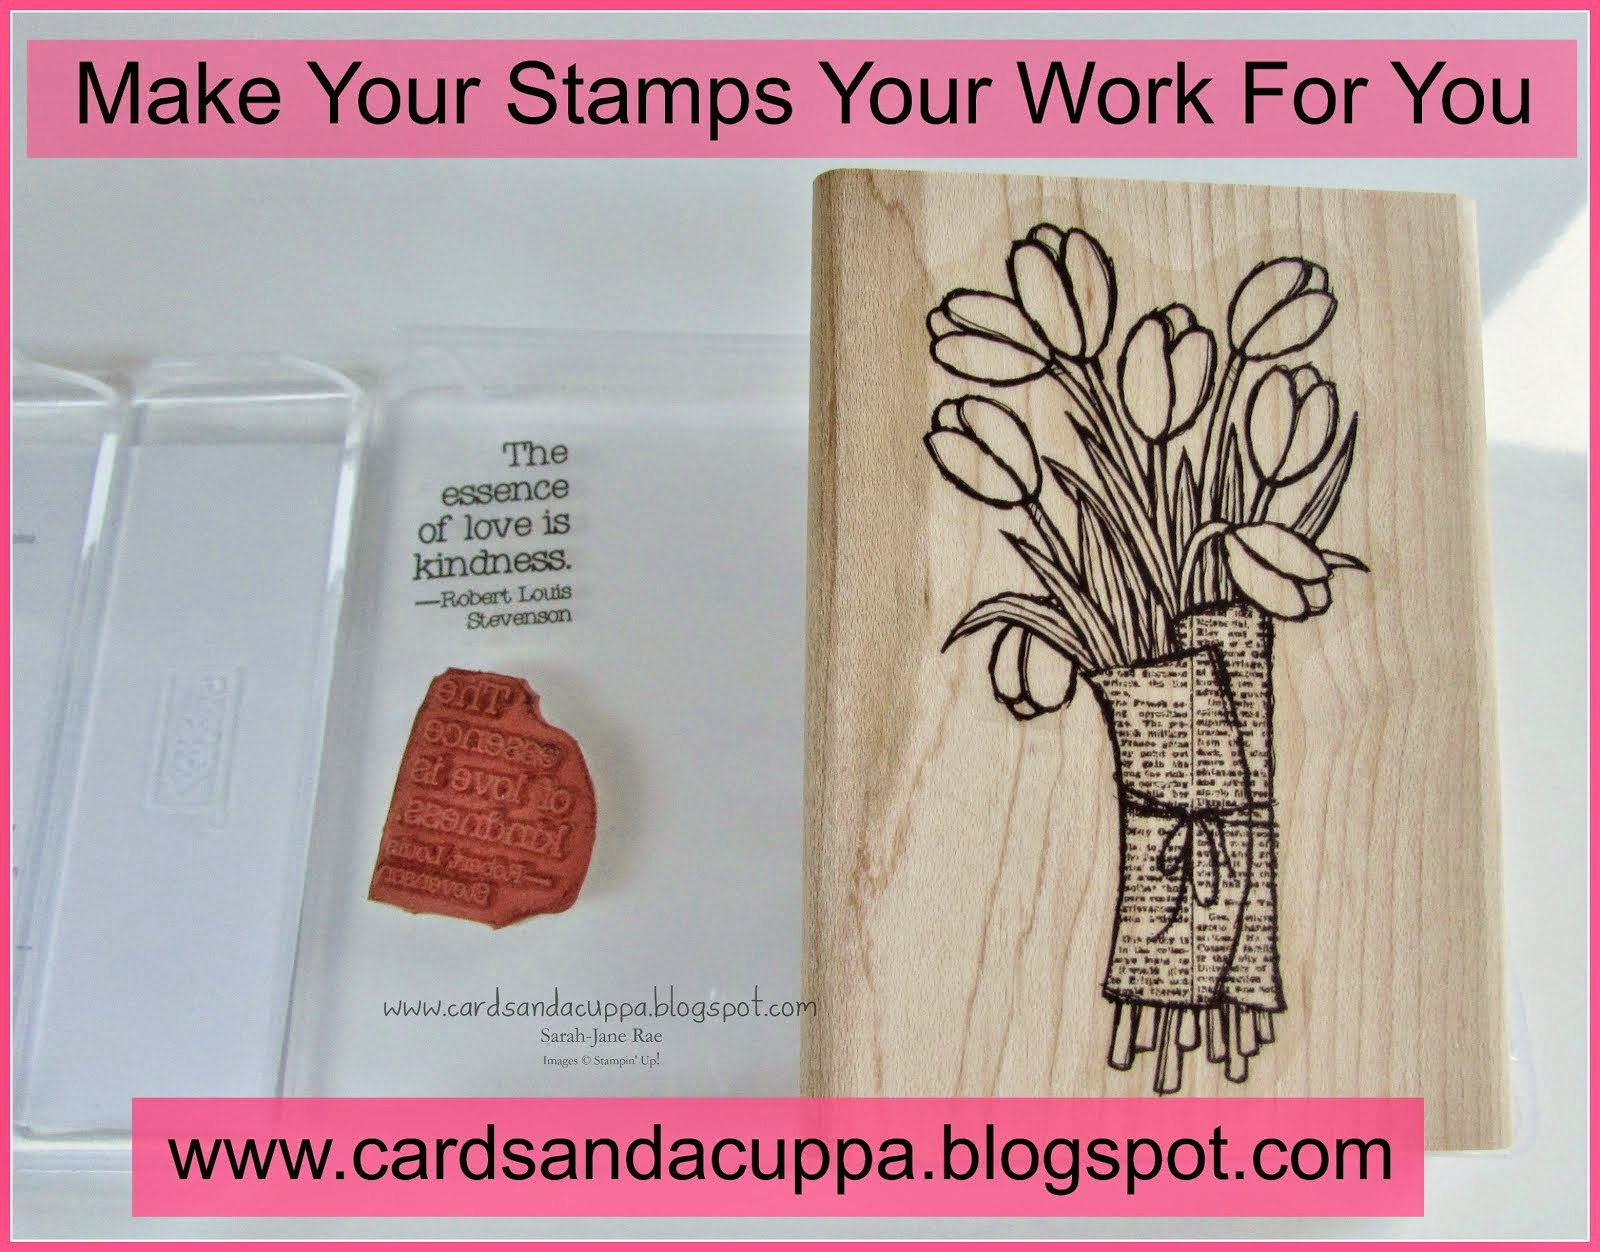 Make You Stamps Work For You